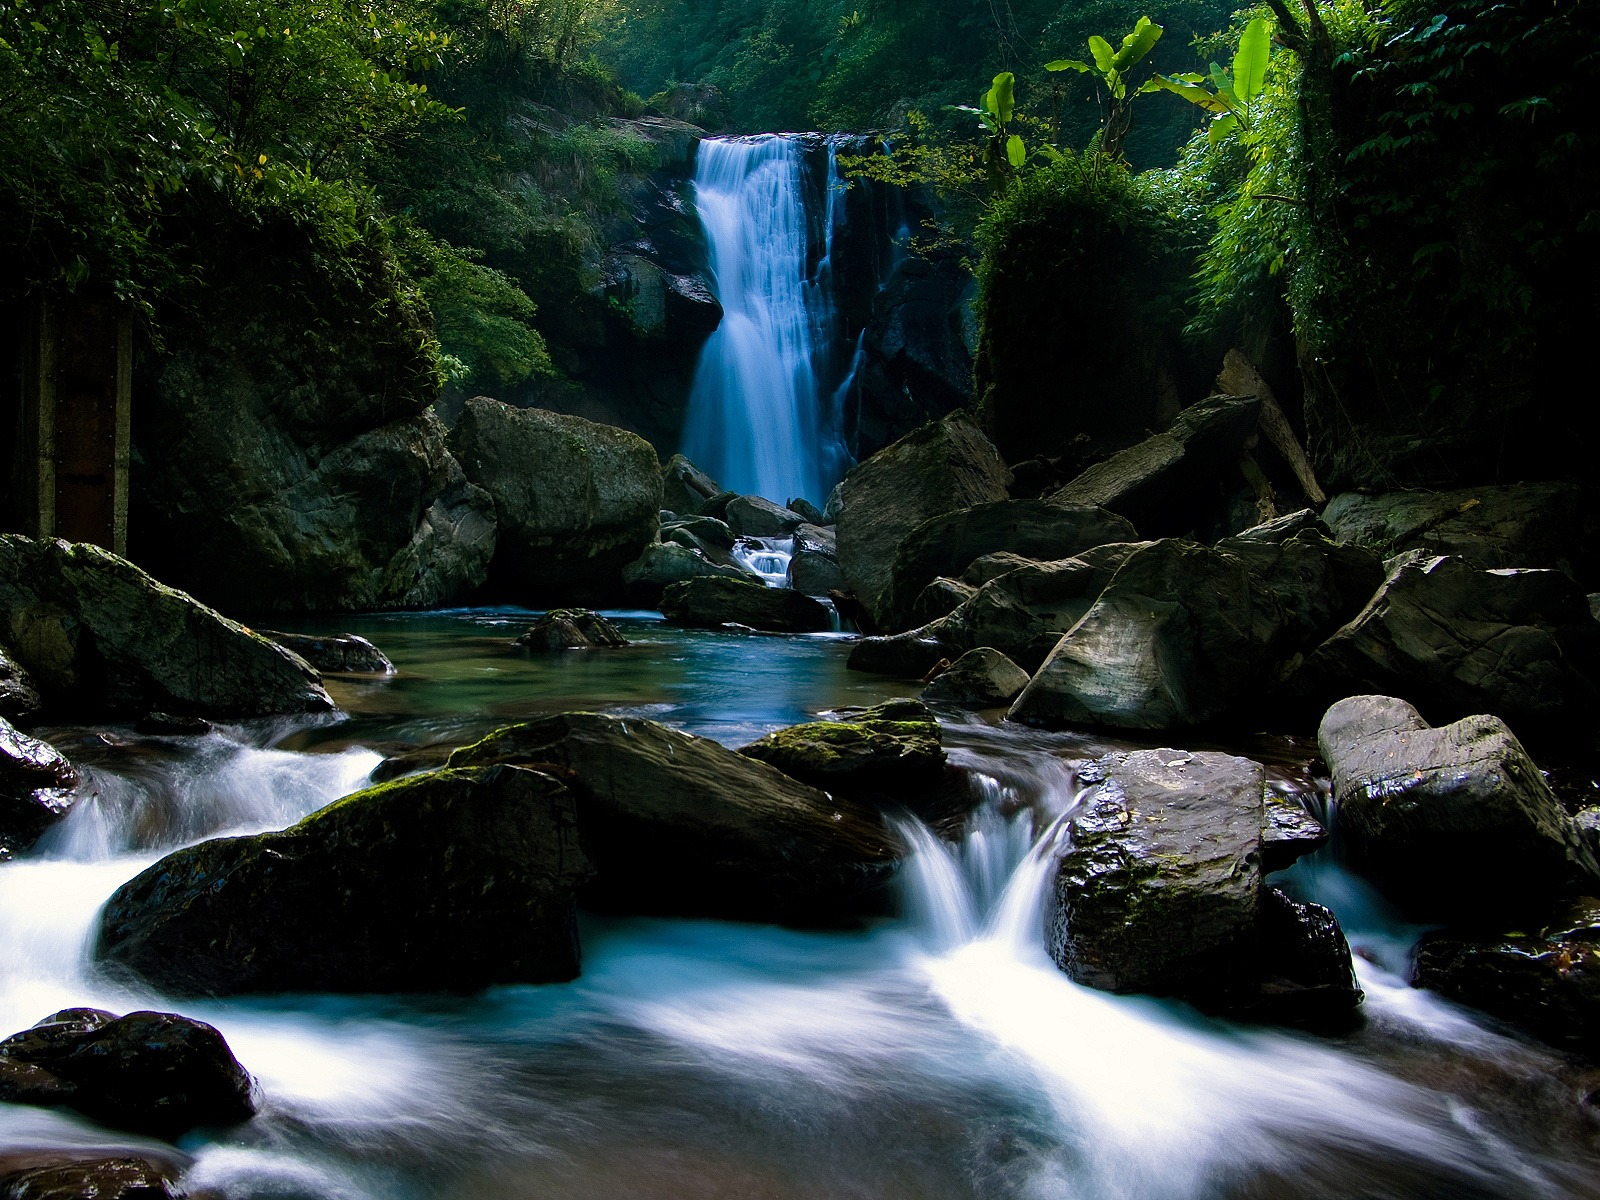 waterfall wallpaper waterfalls nature wallpaper 1600 1200 1402jpg 1600x1200